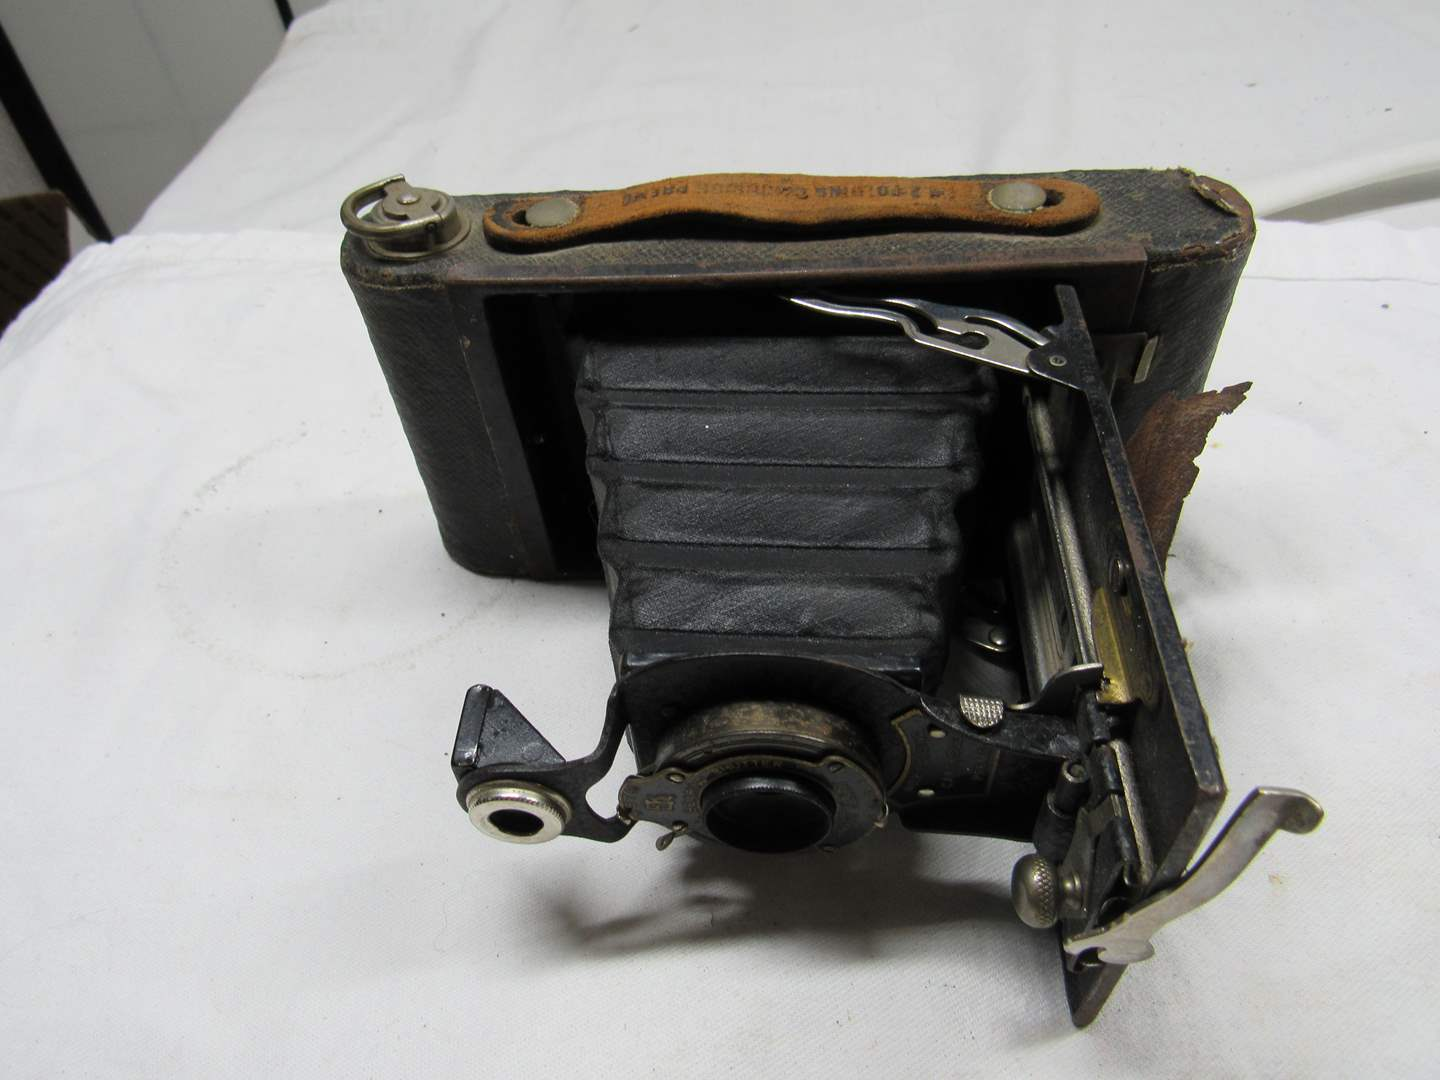 Lot # 226  Antique Kodak camera (condition unknown) I did not try to close it (main image)